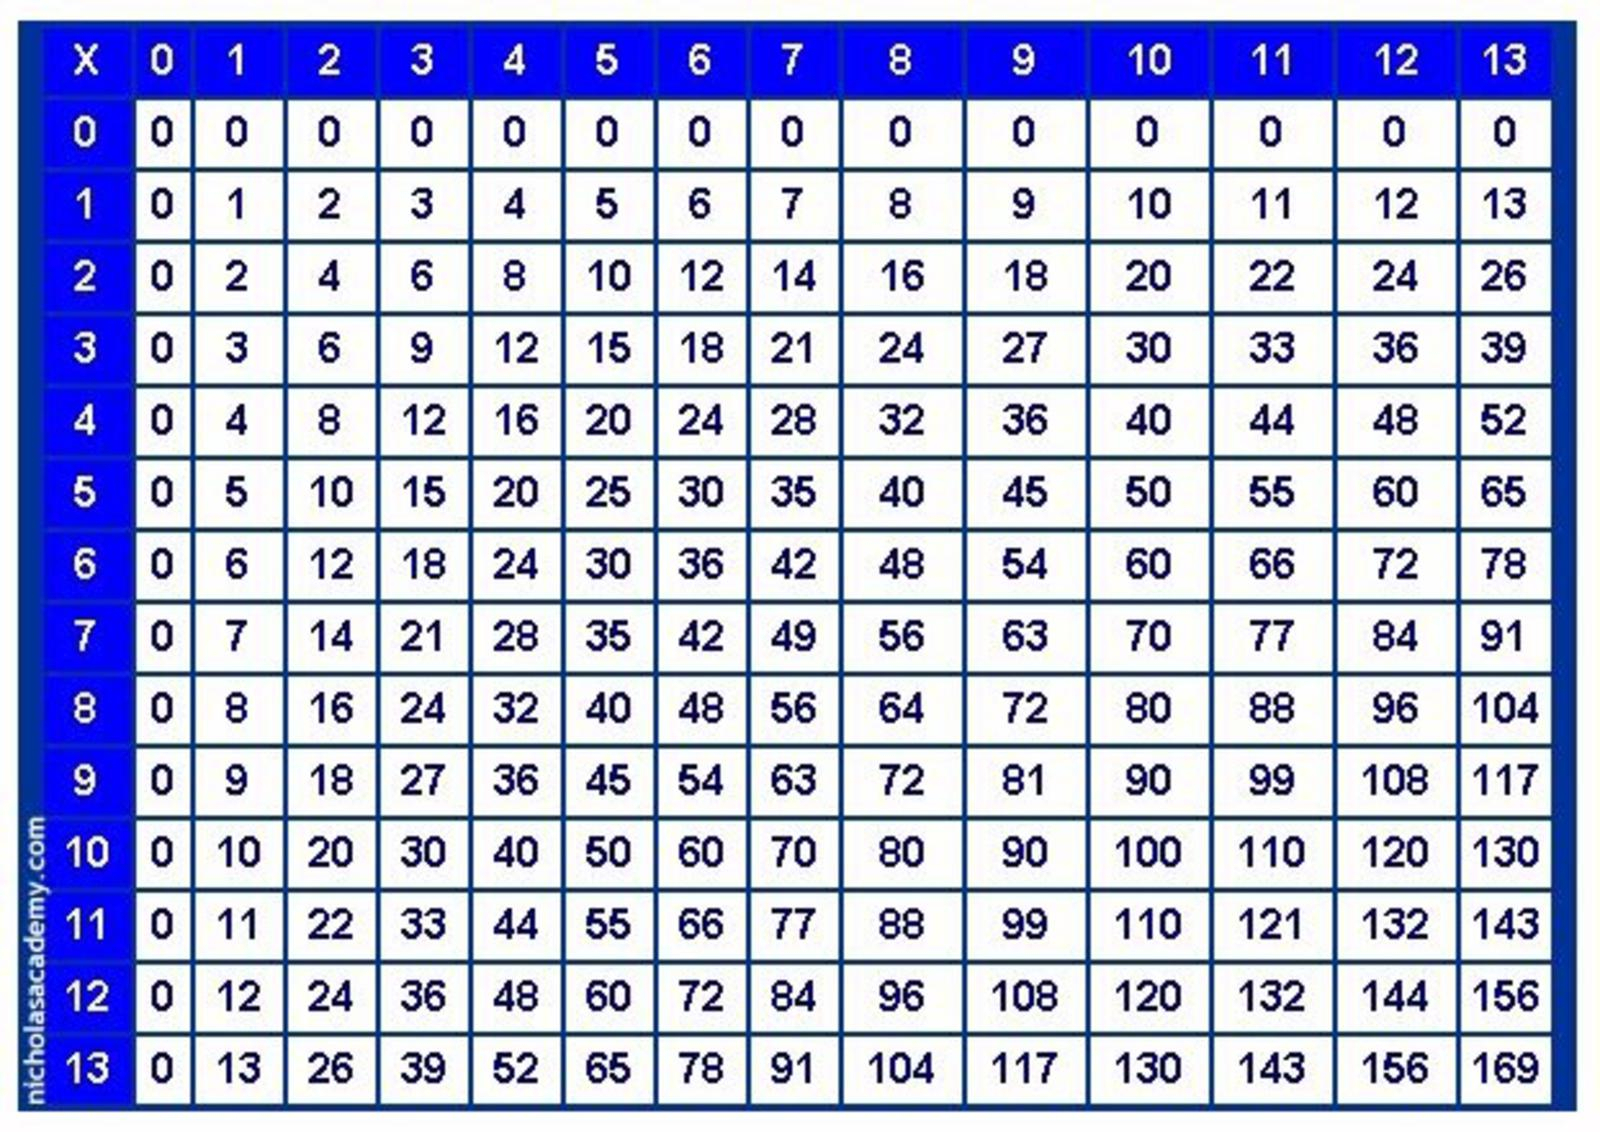 8 Best Photos Of 0-20 Subtraction Charts To Print - Full within Printable Multiplication Chart 0-20